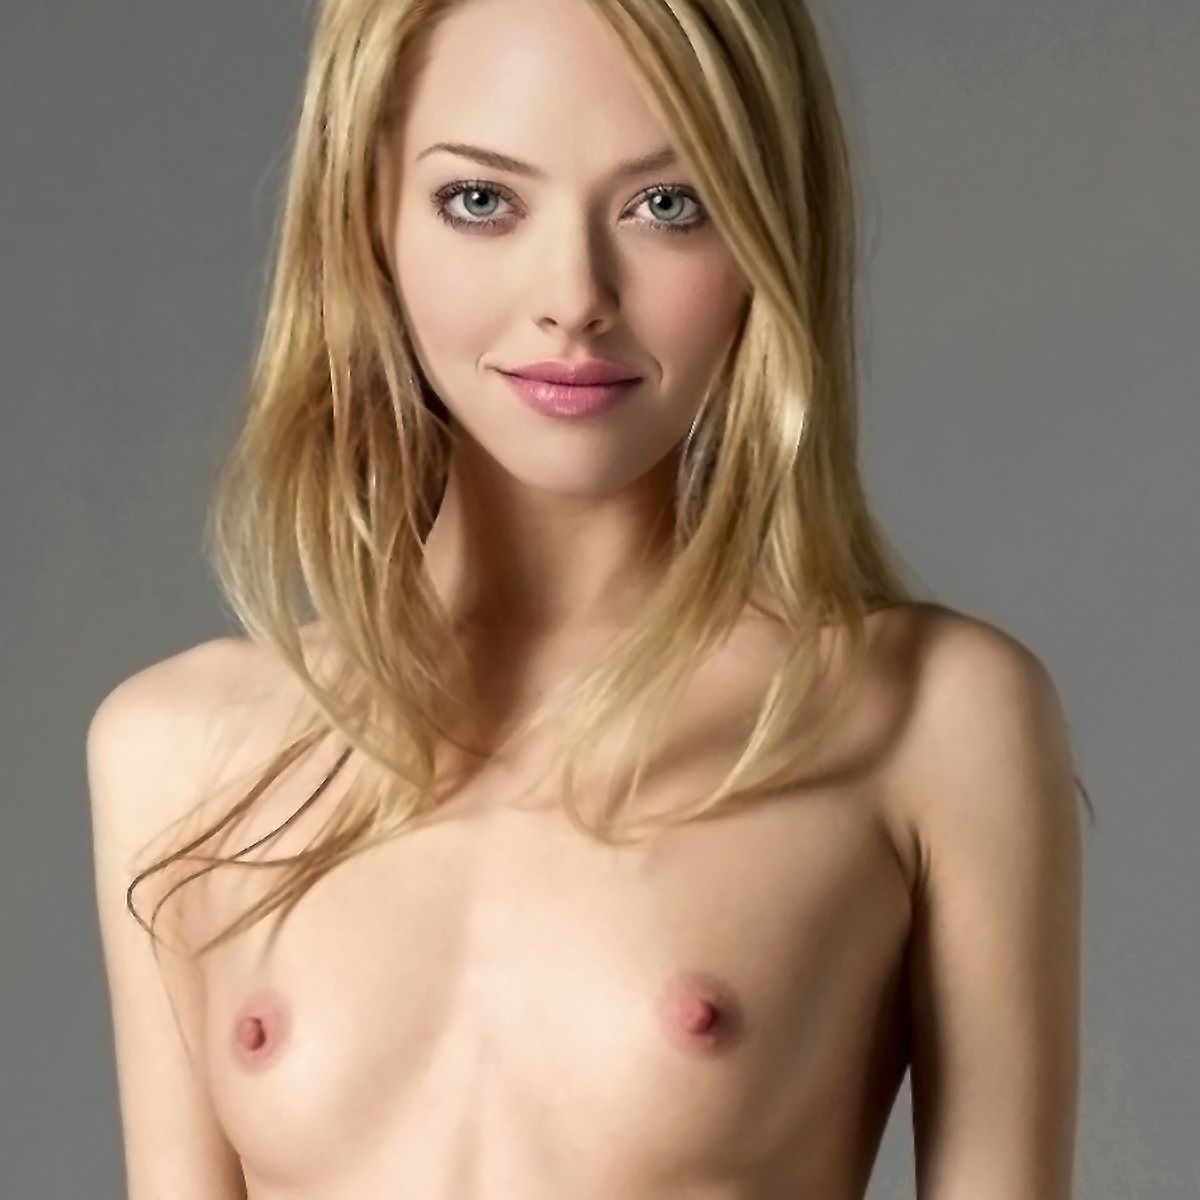 Wild R. recommend best of who has the smallest breasts in hollywood nude